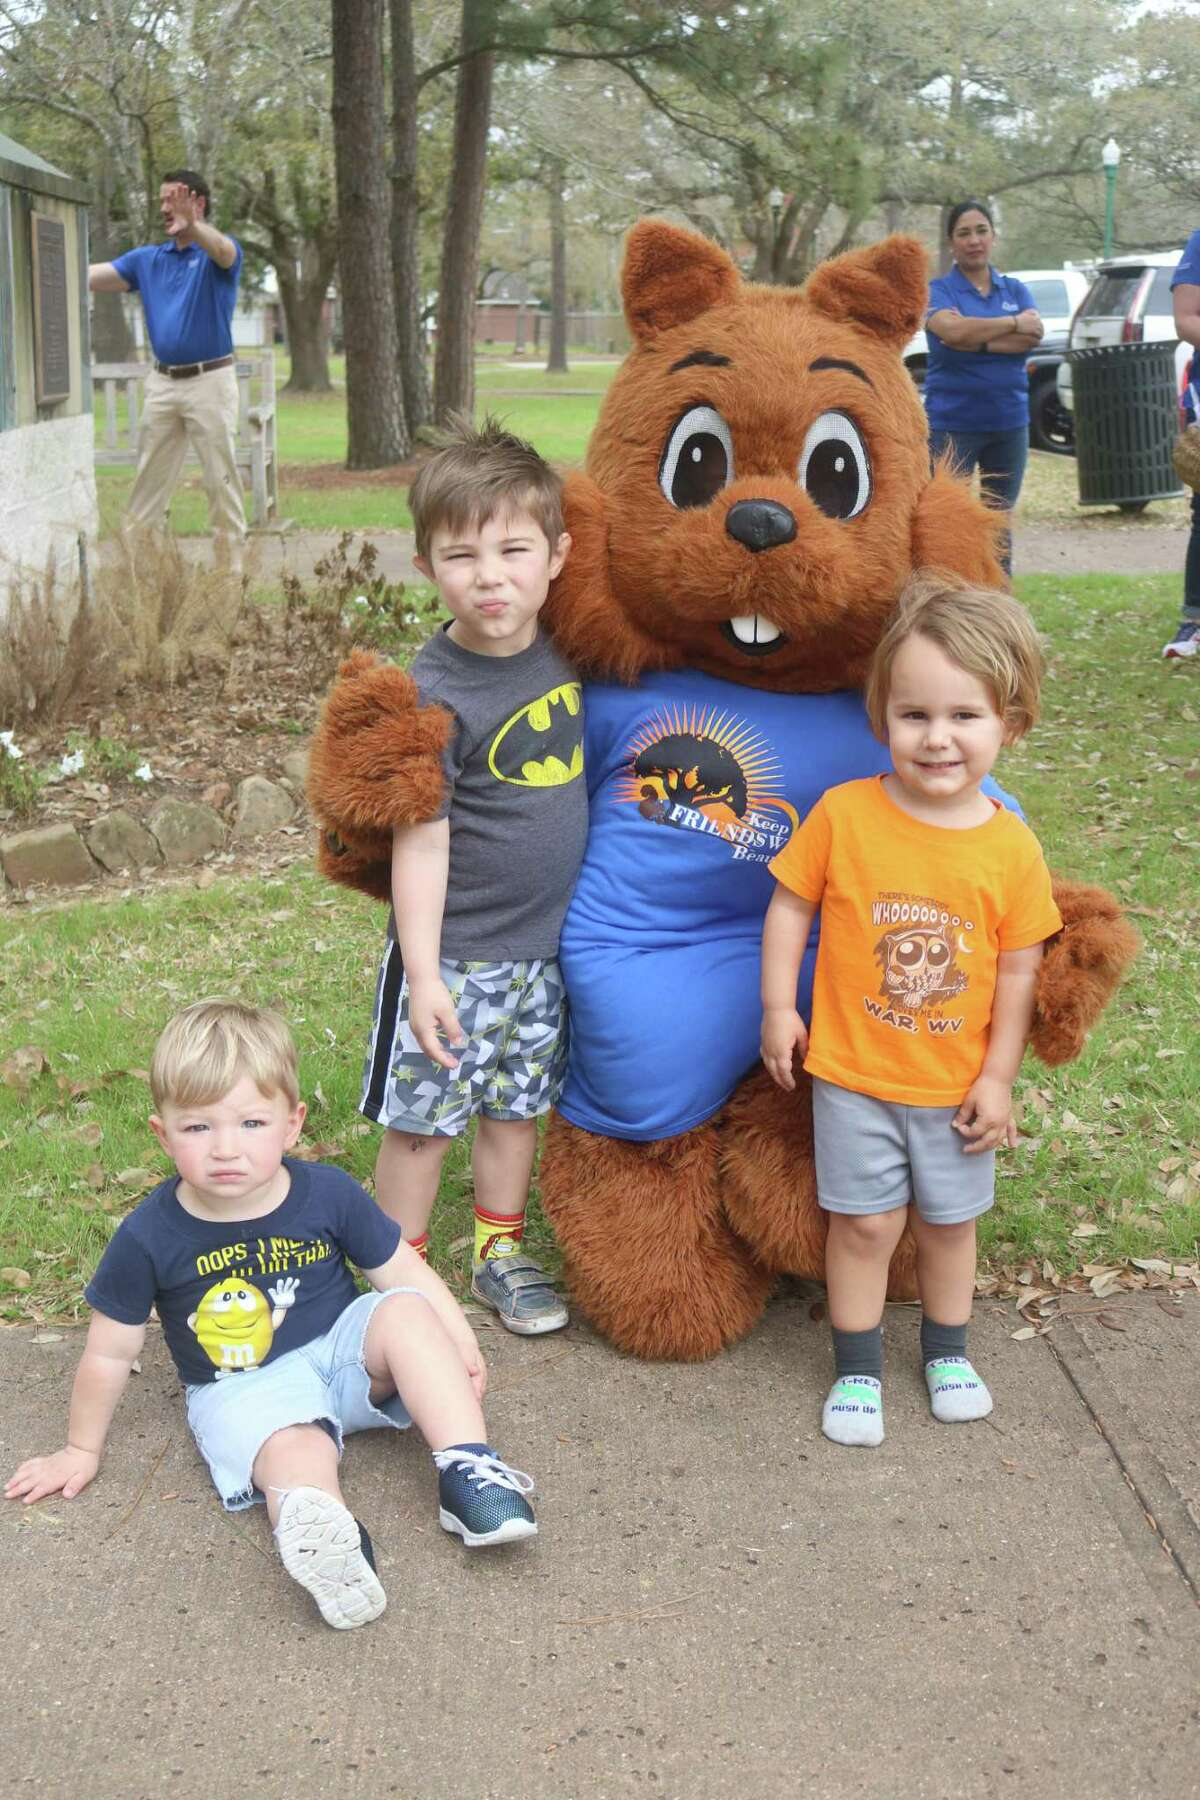 Following the ceremony honoring the new Fairy Trail Door, Figgy, the Friendswood mascot, was visited by Carter Wilhoite-Moore, left, Everett Requardt and Seth Austin.